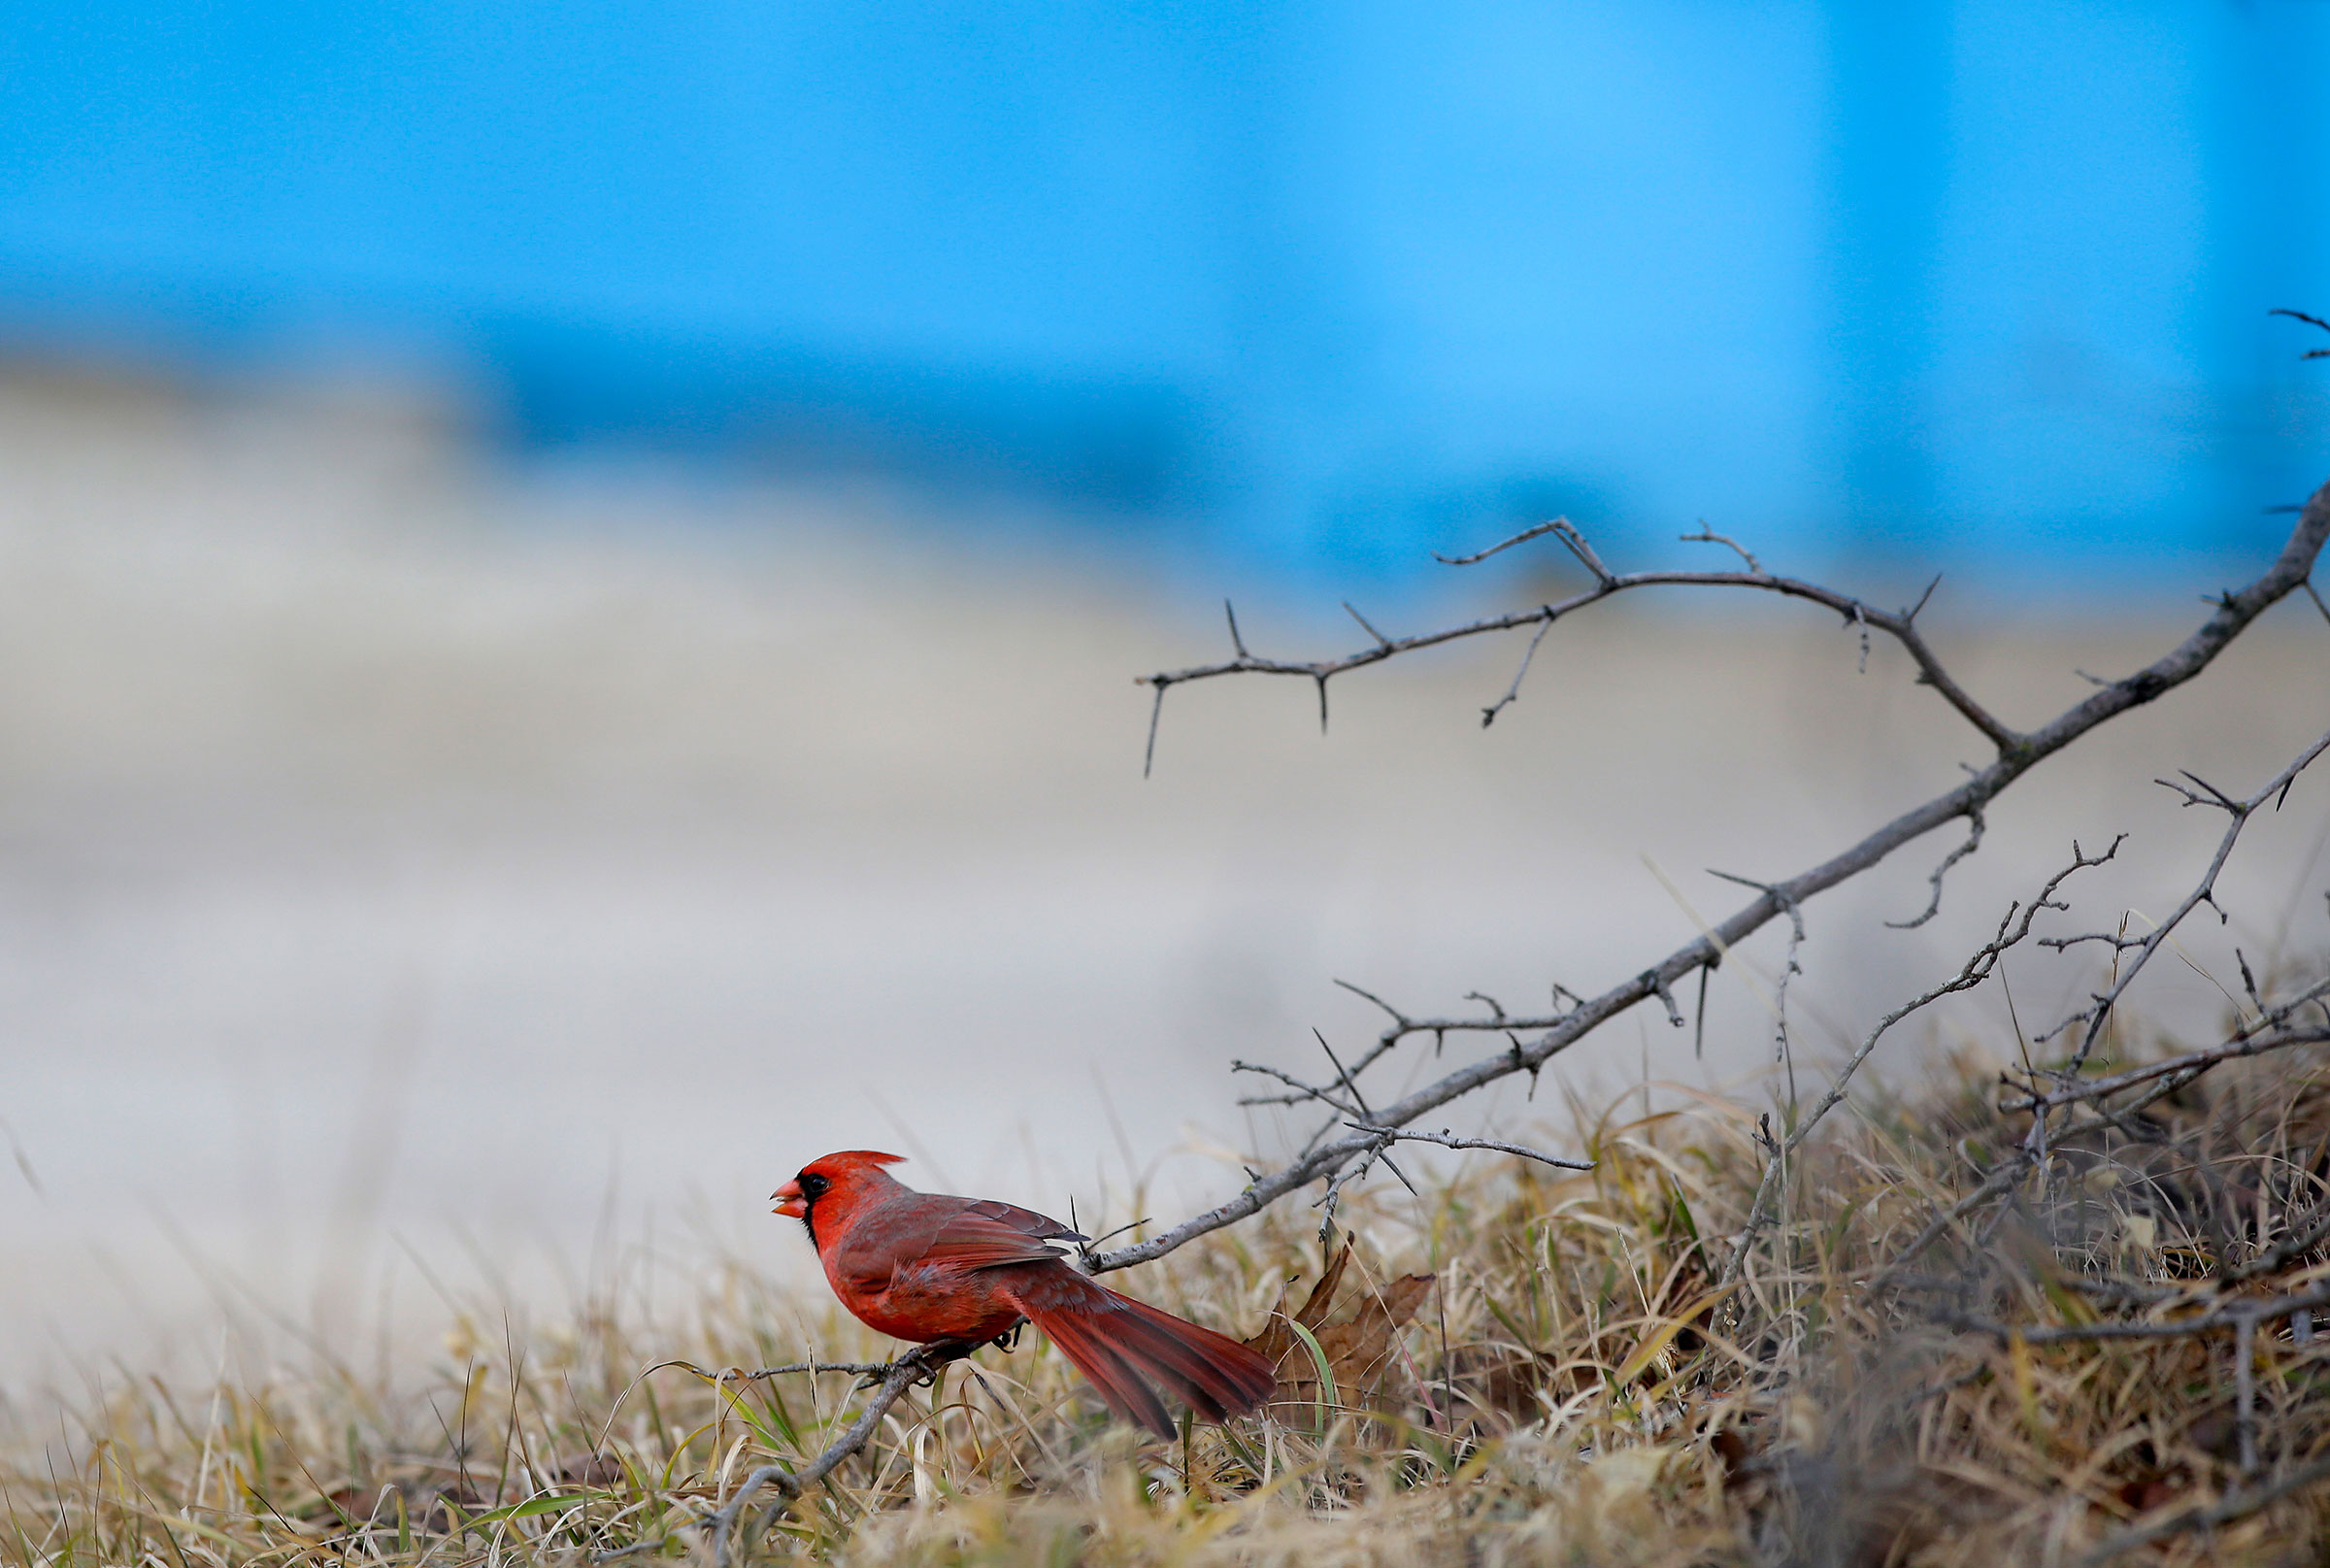 A Northern Cardinal sits on a tree branch in Chicago's Montrose Point Bird Sanctuary. More than 30 different bird species were counted from Montrose Beach on the Northside to Promontory Point on the Southside of the city. Joshua Lott